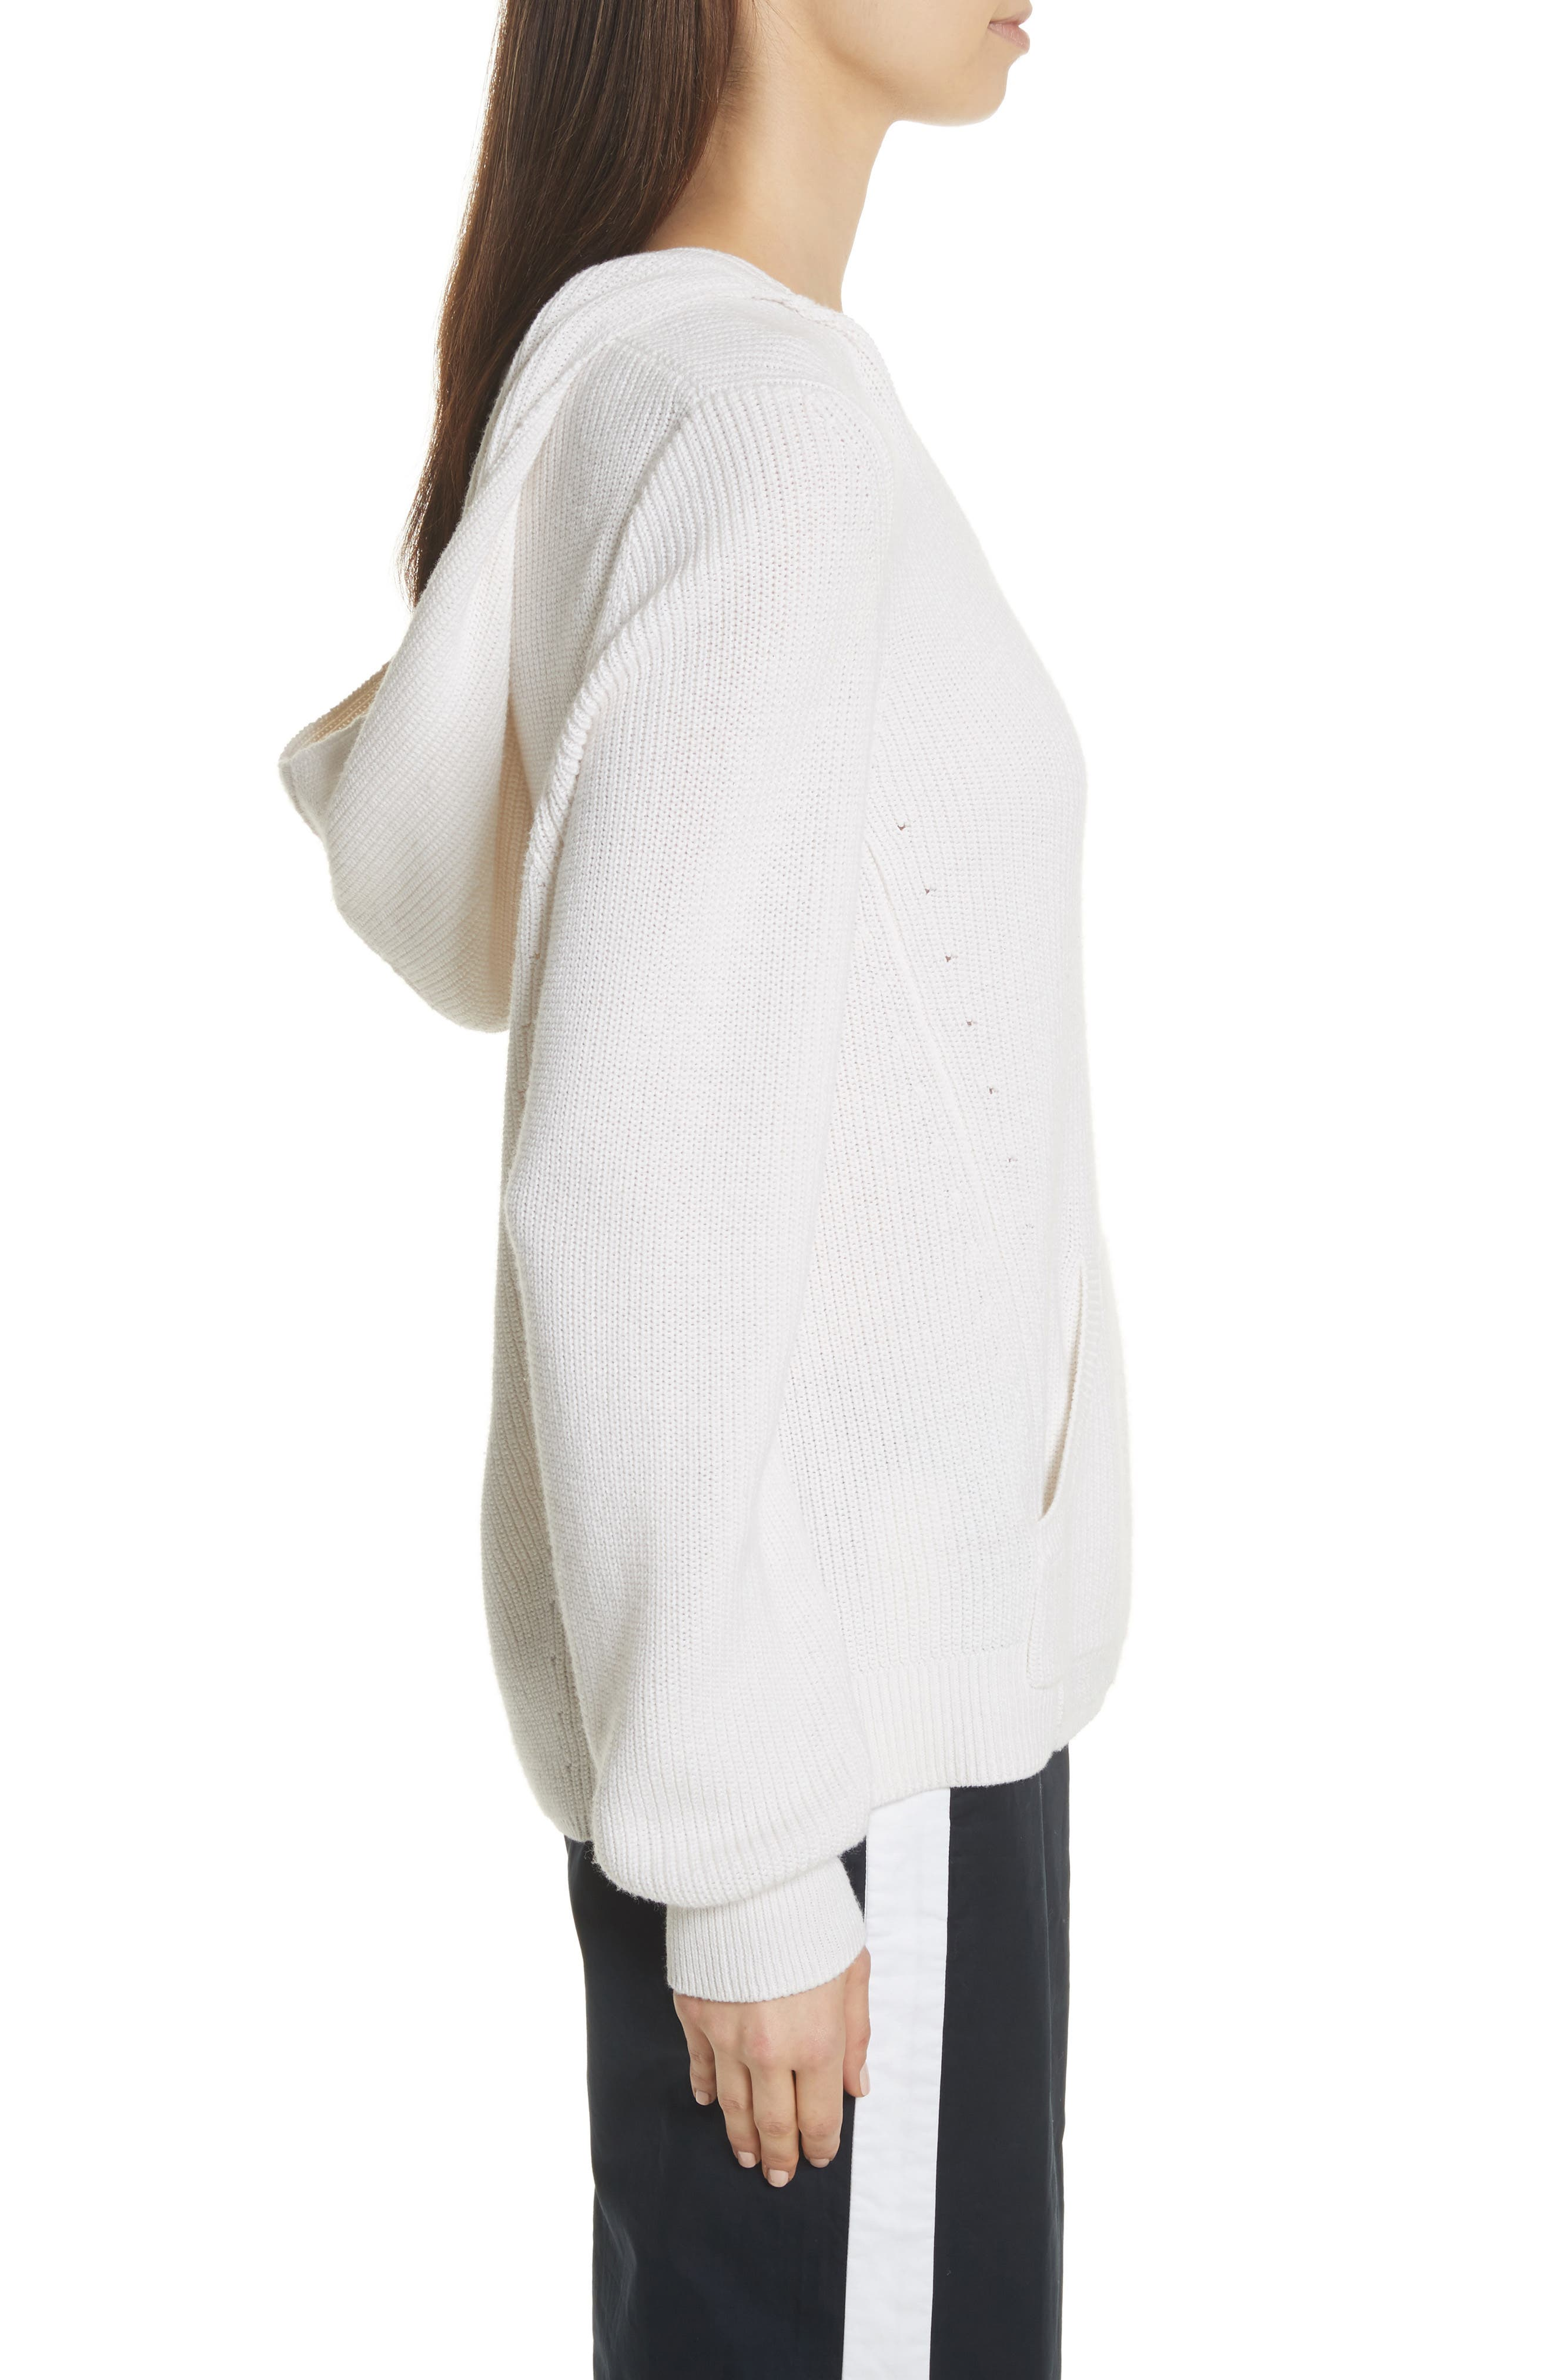 Octavia Hooded Sweater,                             Alternate thumbnail 3, color,                             Ivory